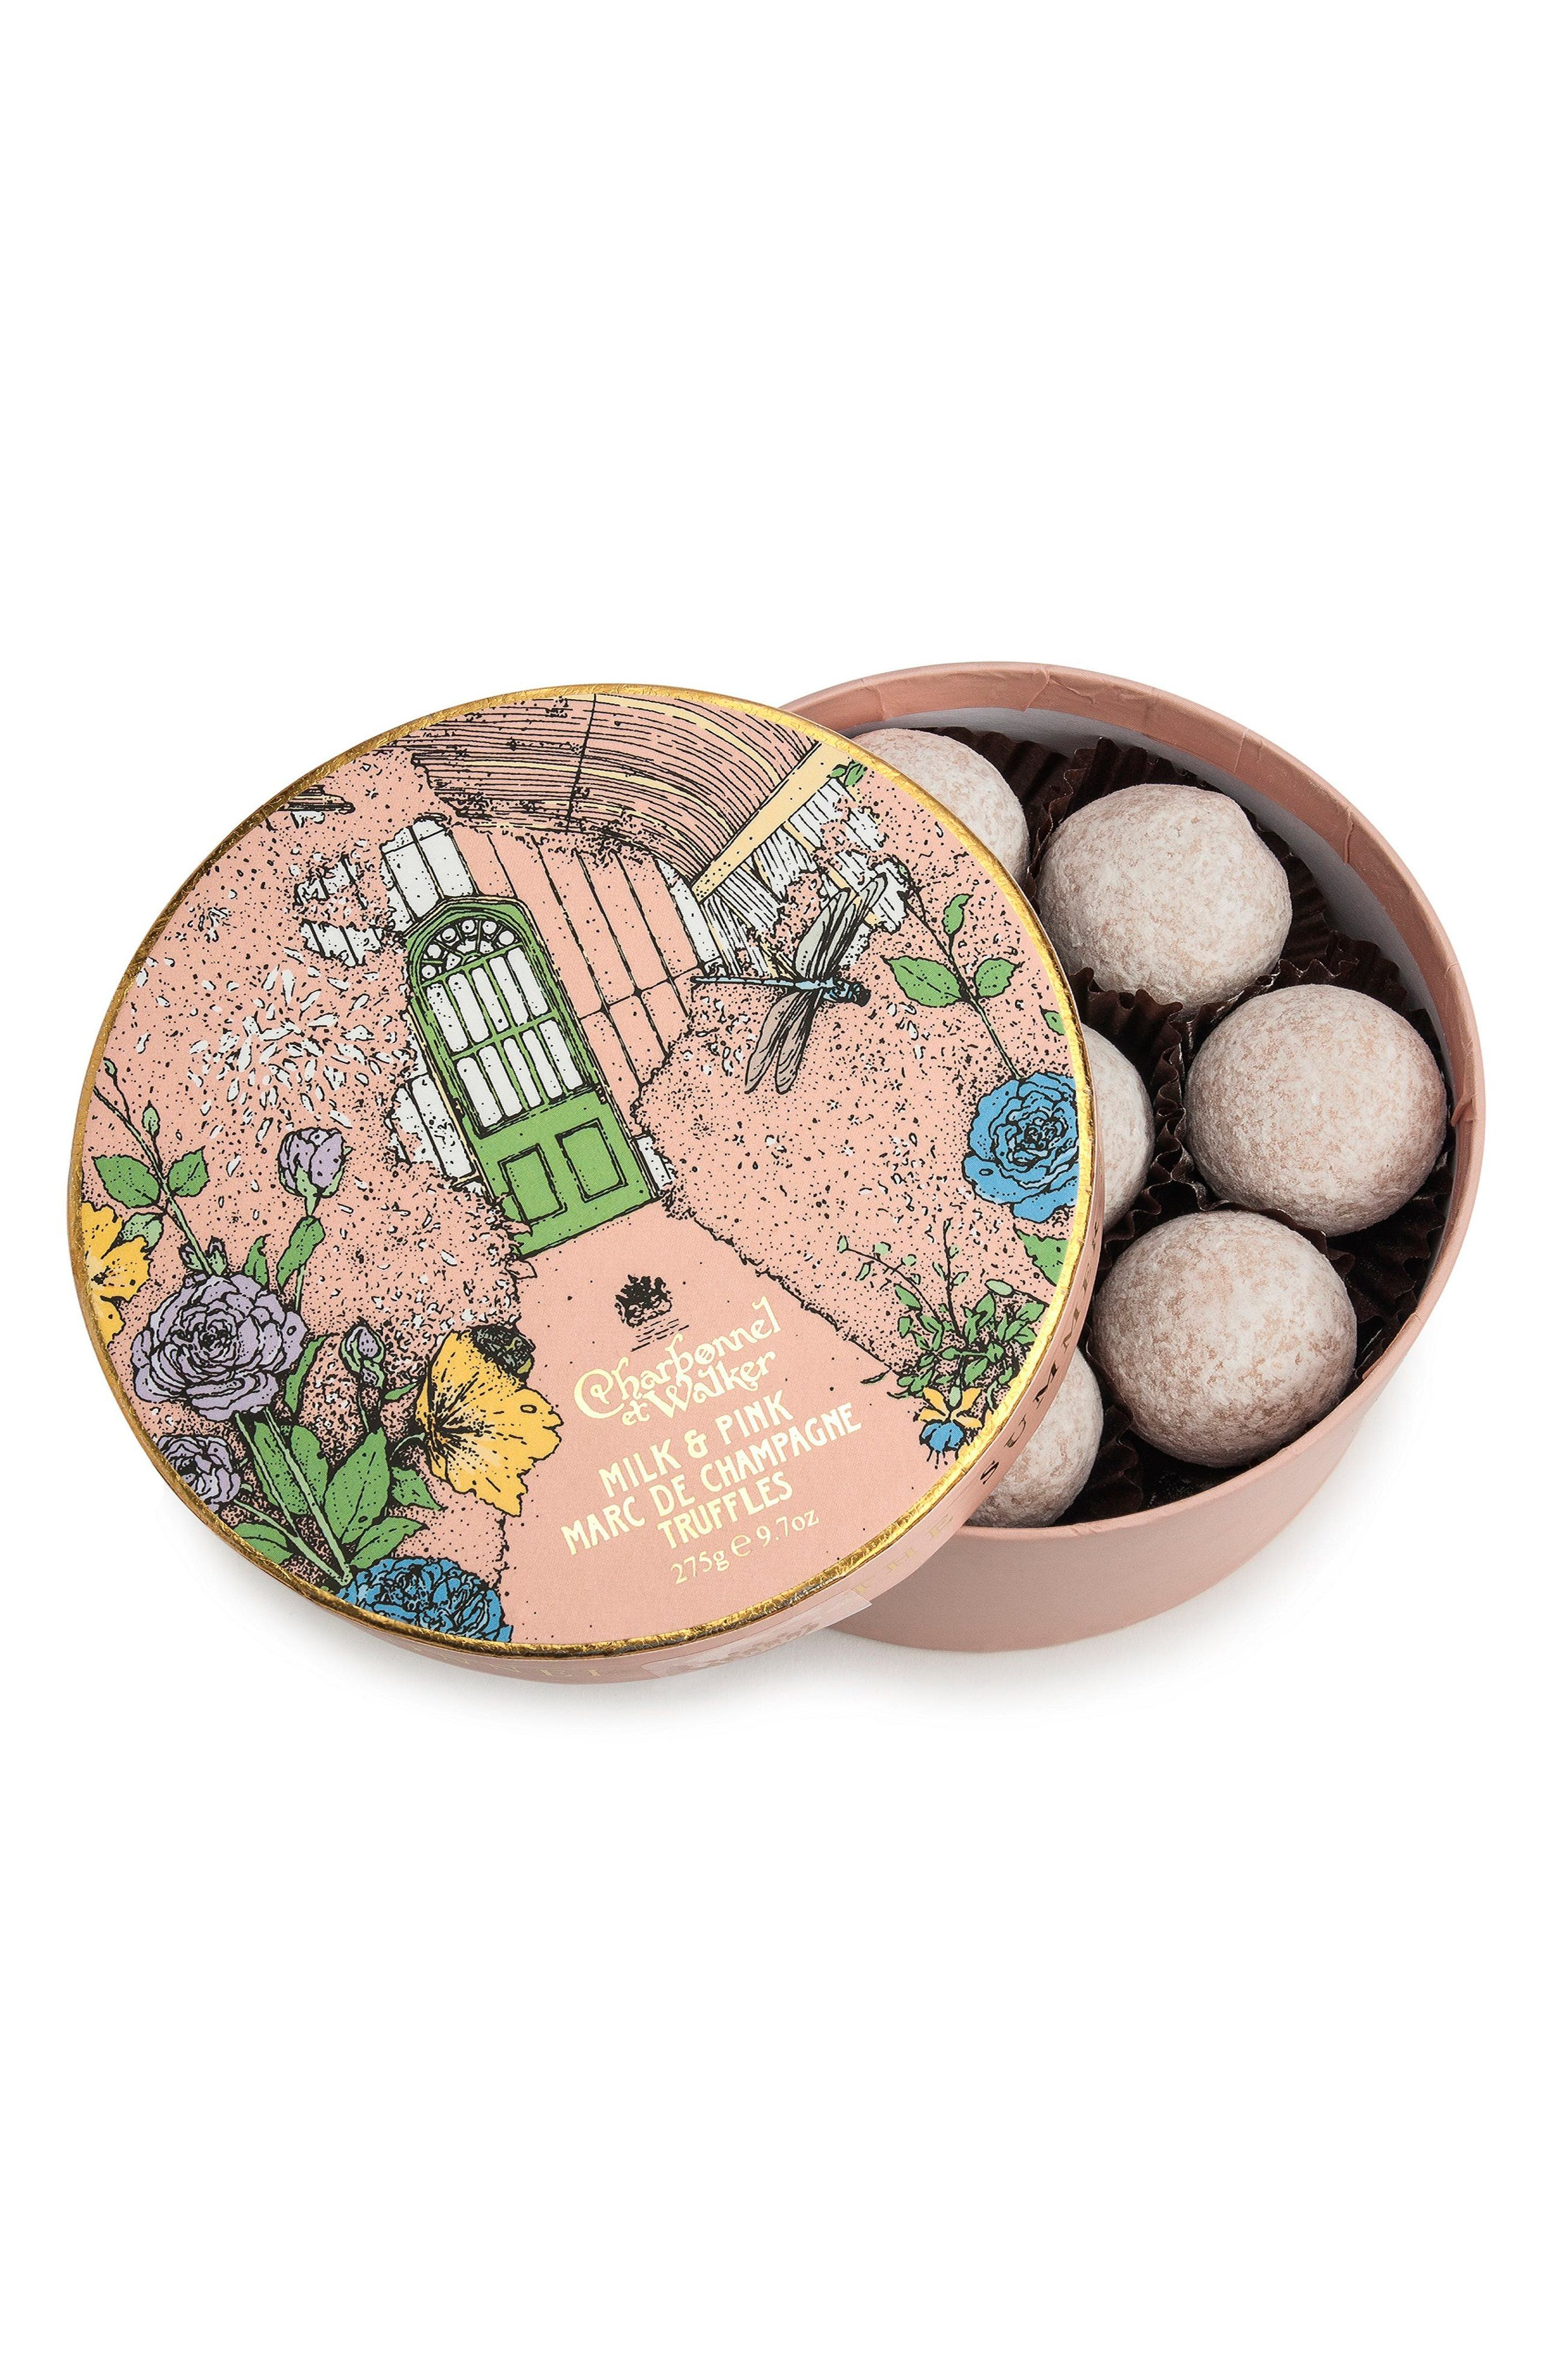 Marc de Champagne Truffles in Gift Box,                             Main thumbnail 1, color,                             650